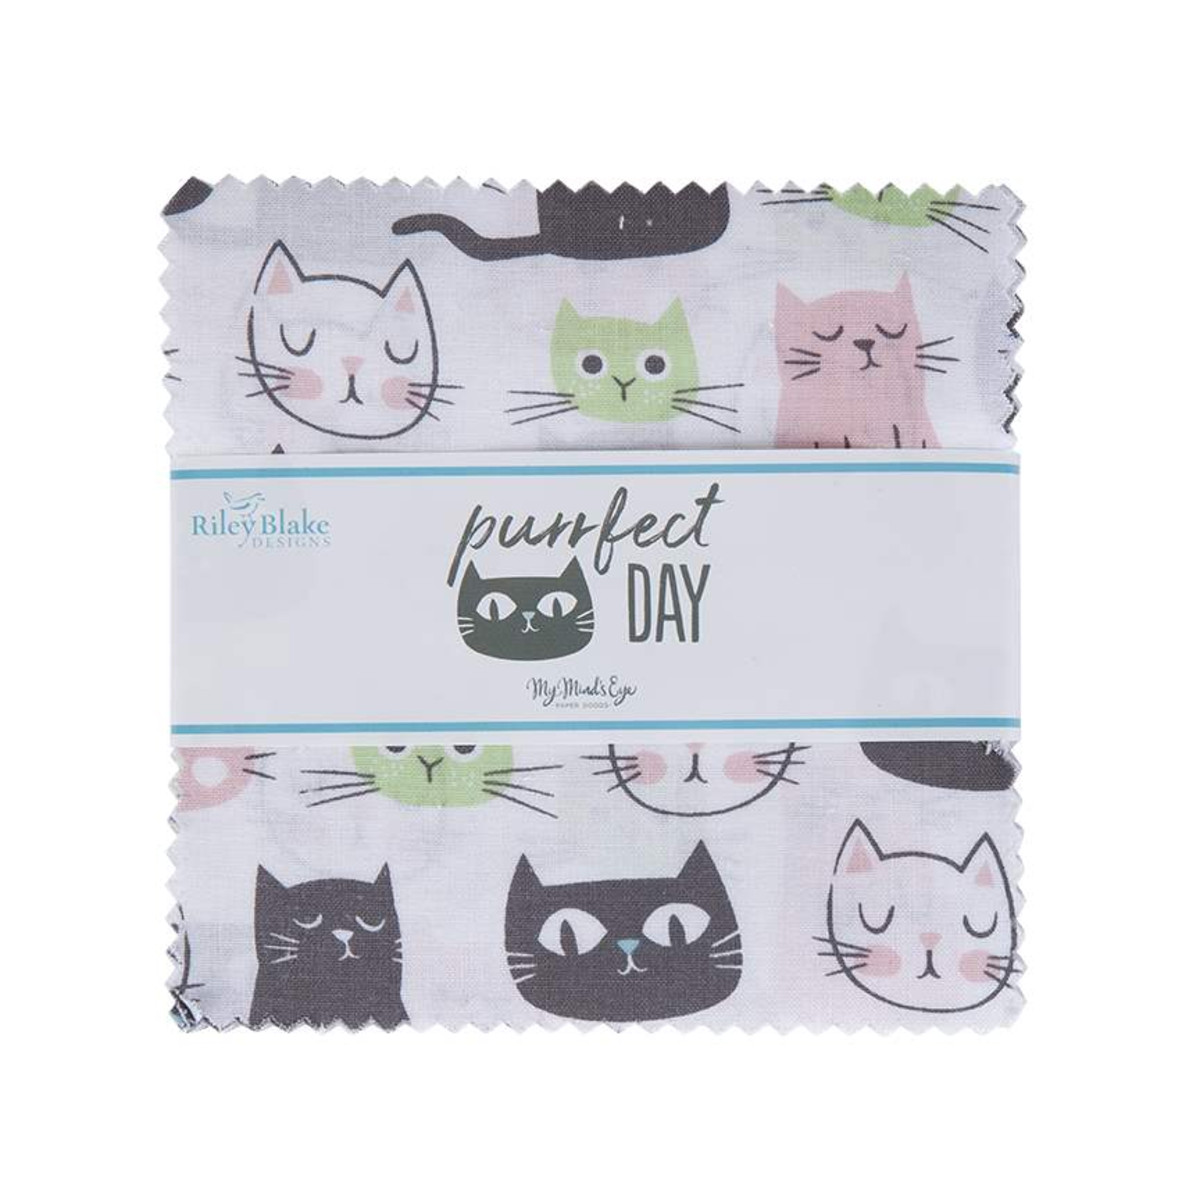 Riley Blake Charm Pack - Purrfect Day by My Mind's Eye